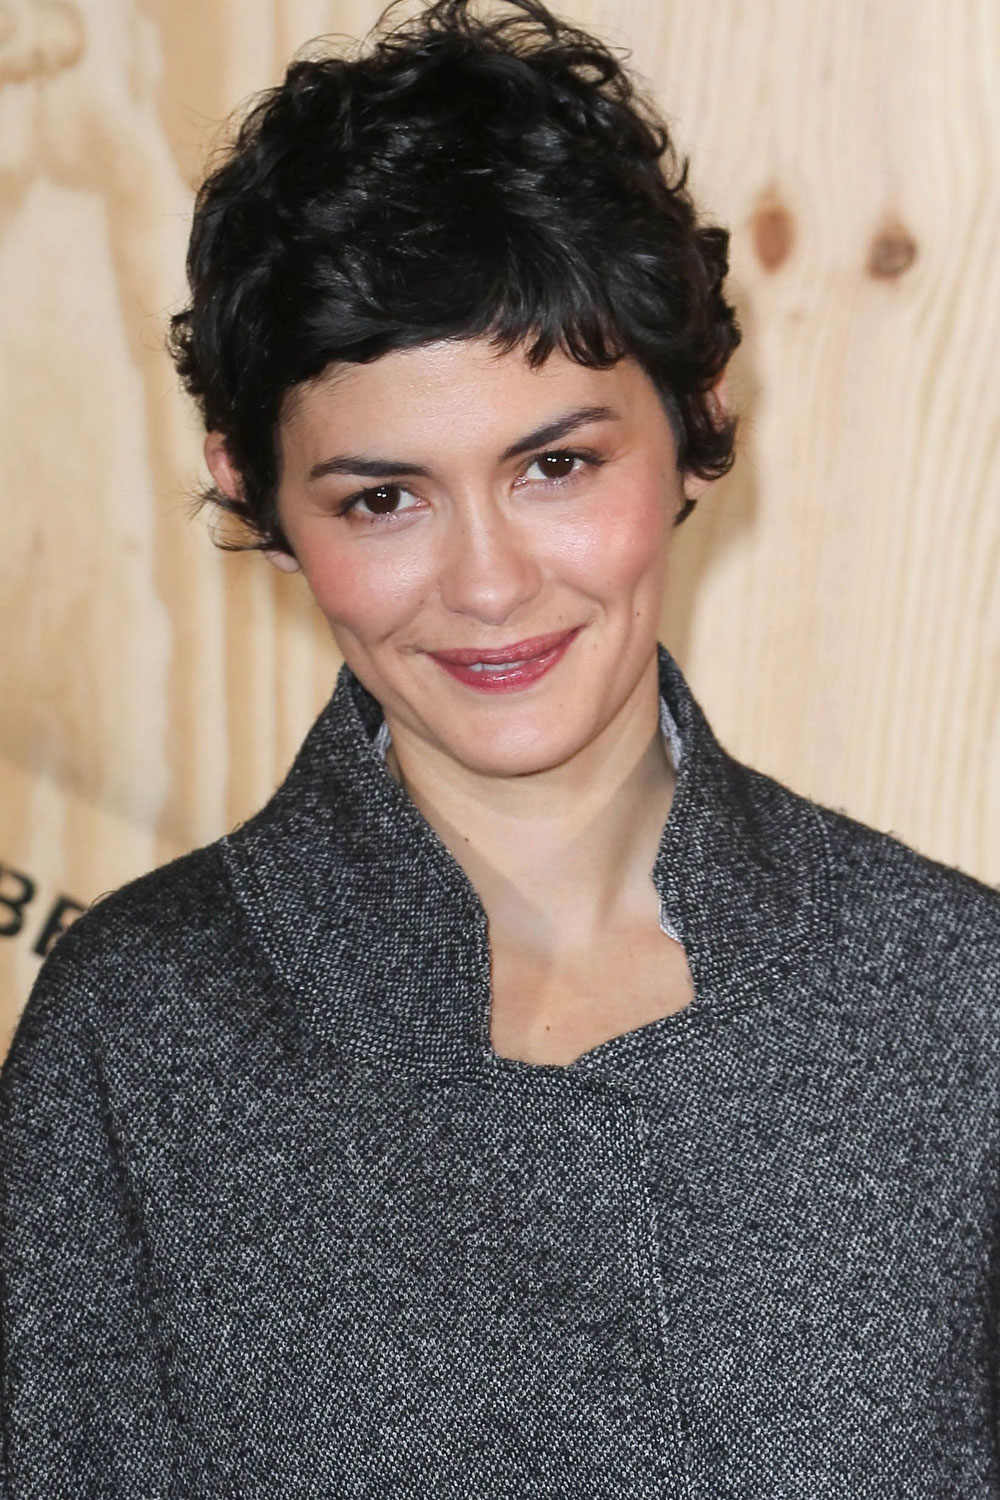 Audrey Tautou With A Messy Pixie Crop The Hair 100 Top Celebrity